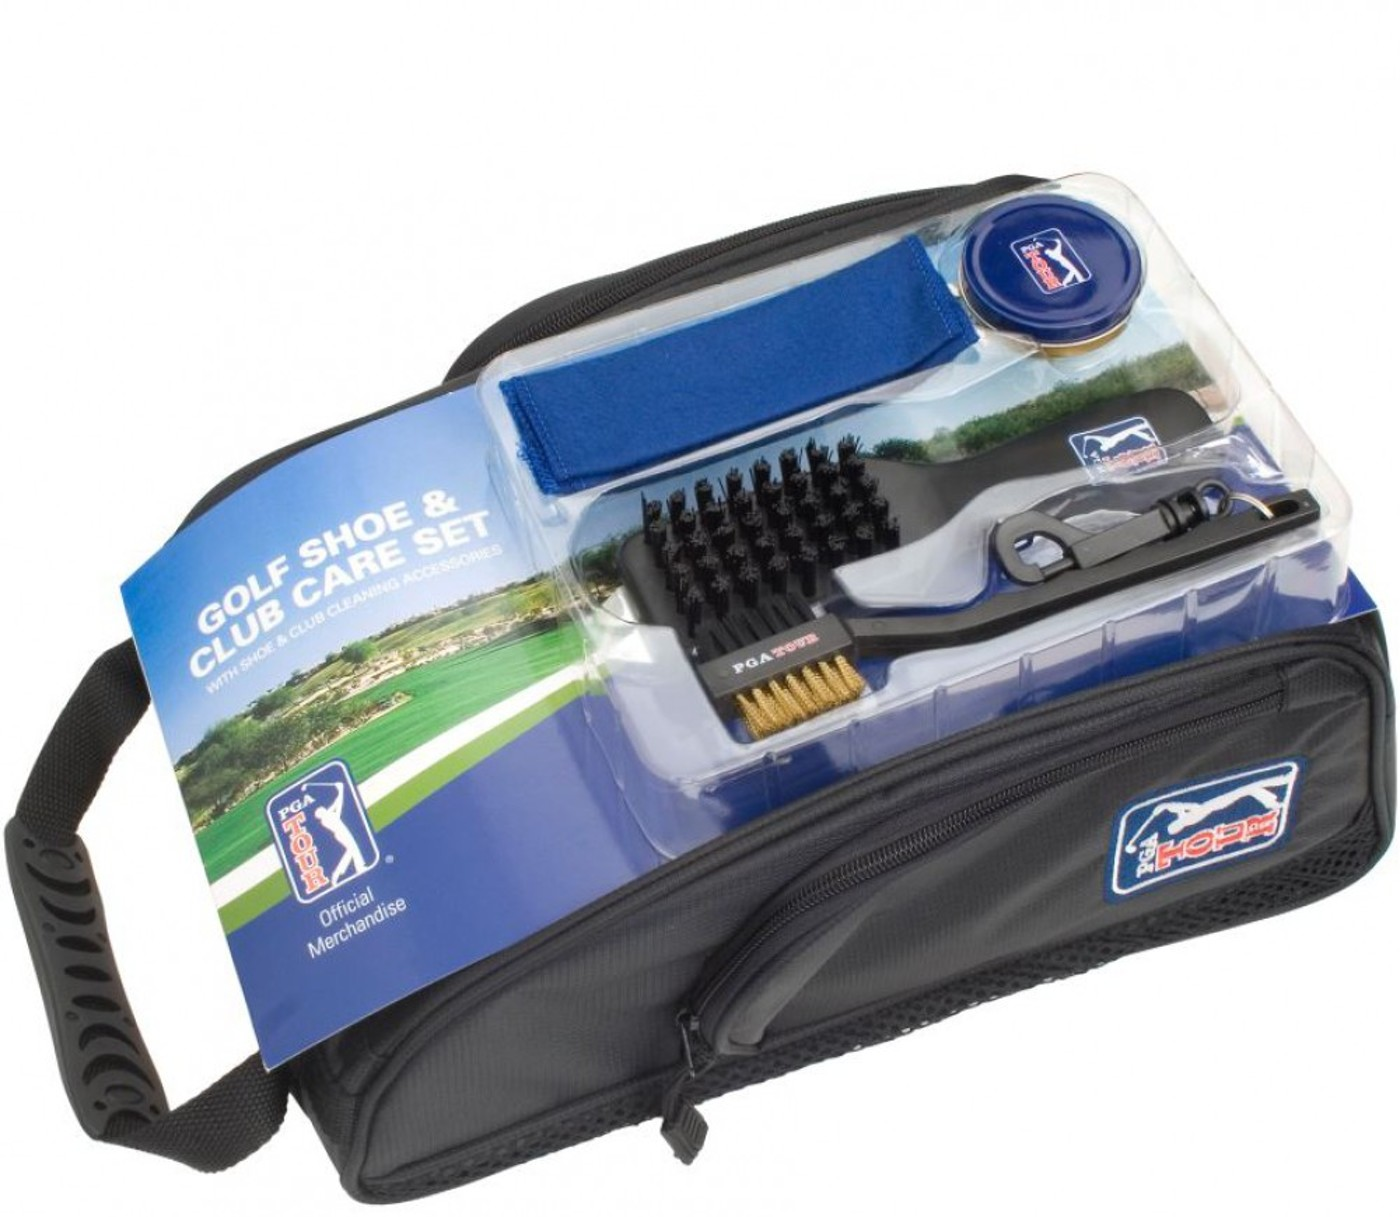 PGA TOUR Golf Shoe Bag and Clu